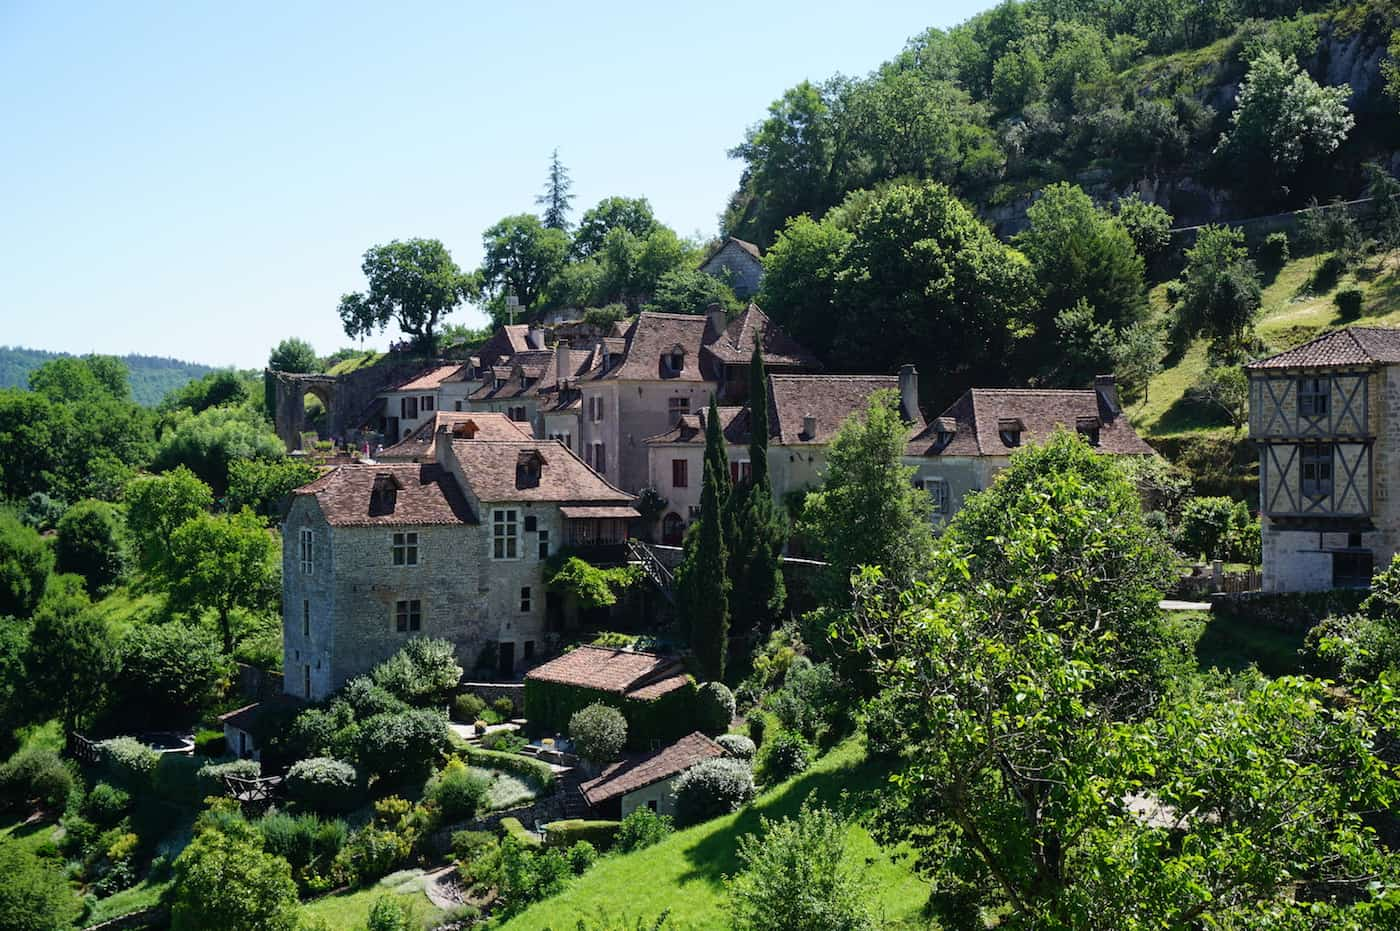 Le village de Saint-Cirq-Lapopie - Lot - Tourisme Occitanie